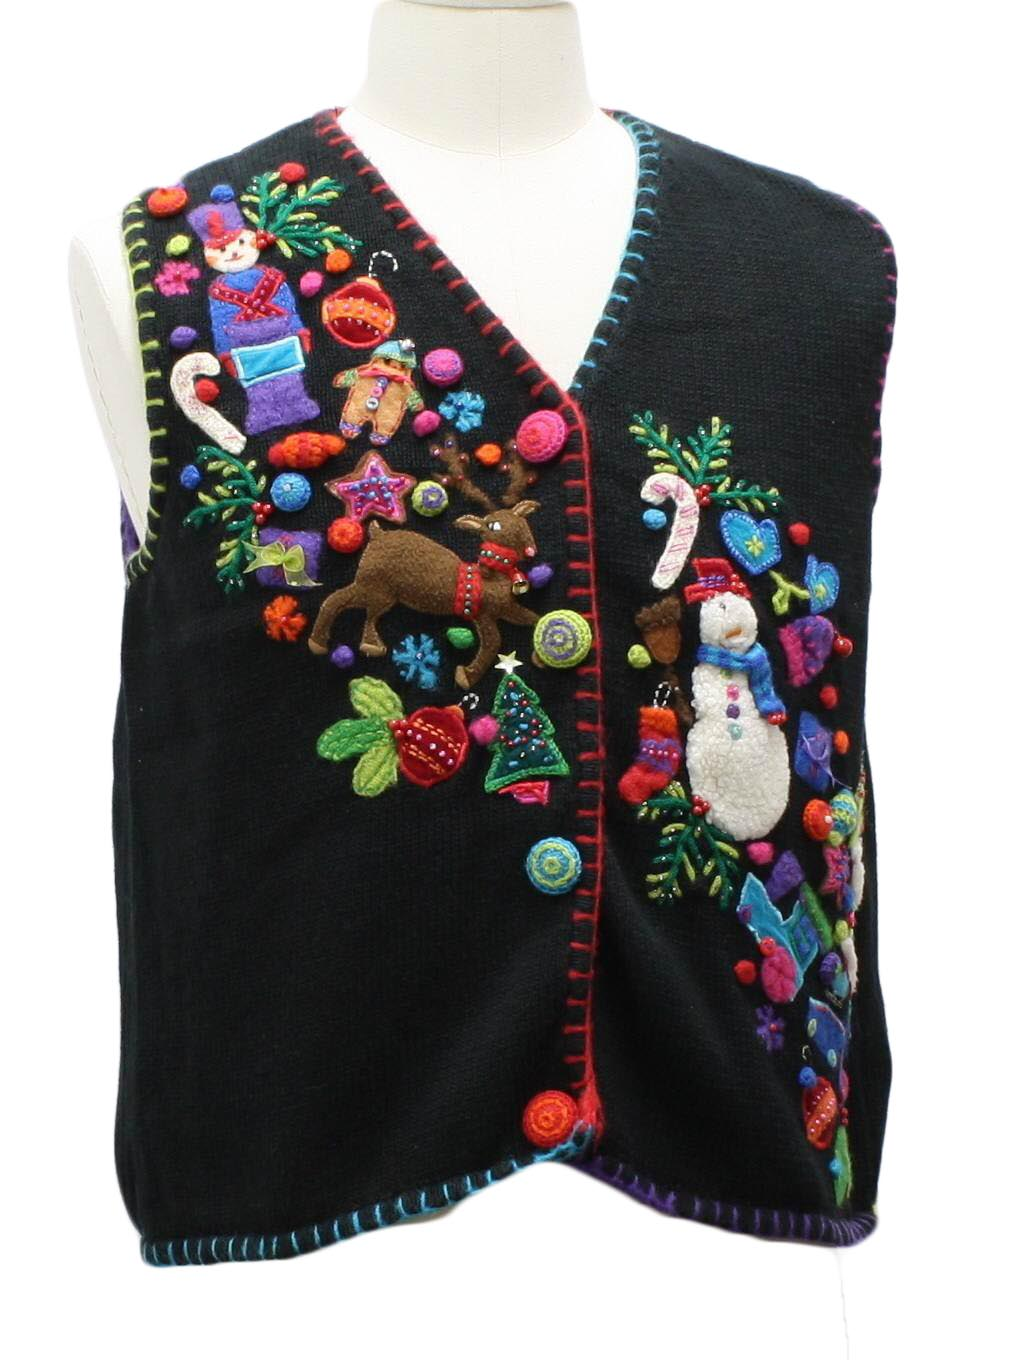 Marisa Christina Womens Ugly Christmas Sweater Vest $34.00 Not in stock. Item No. 241978